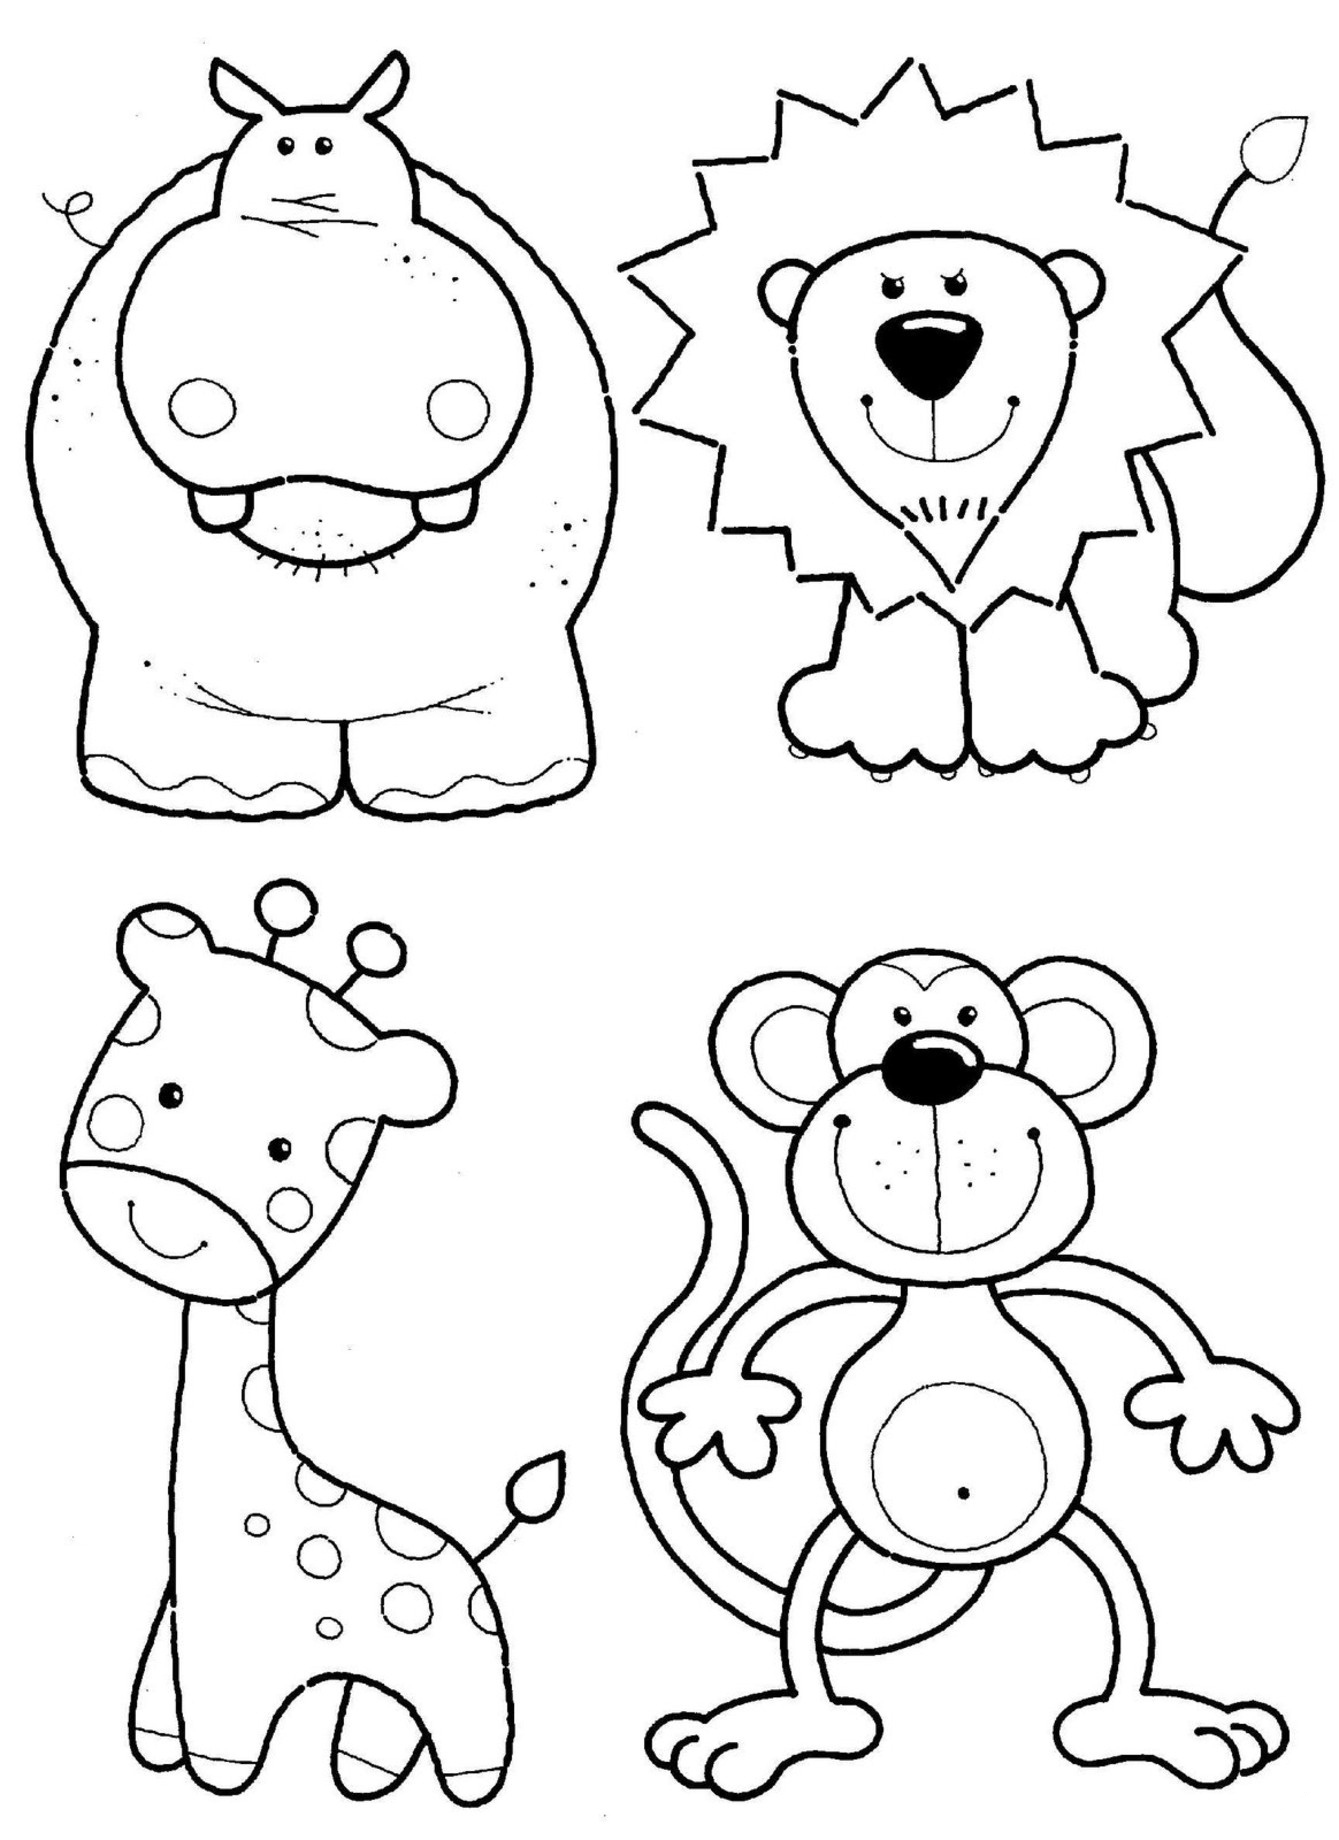 coloring cute animals really cute coloring pages coloring home cute coloring animals